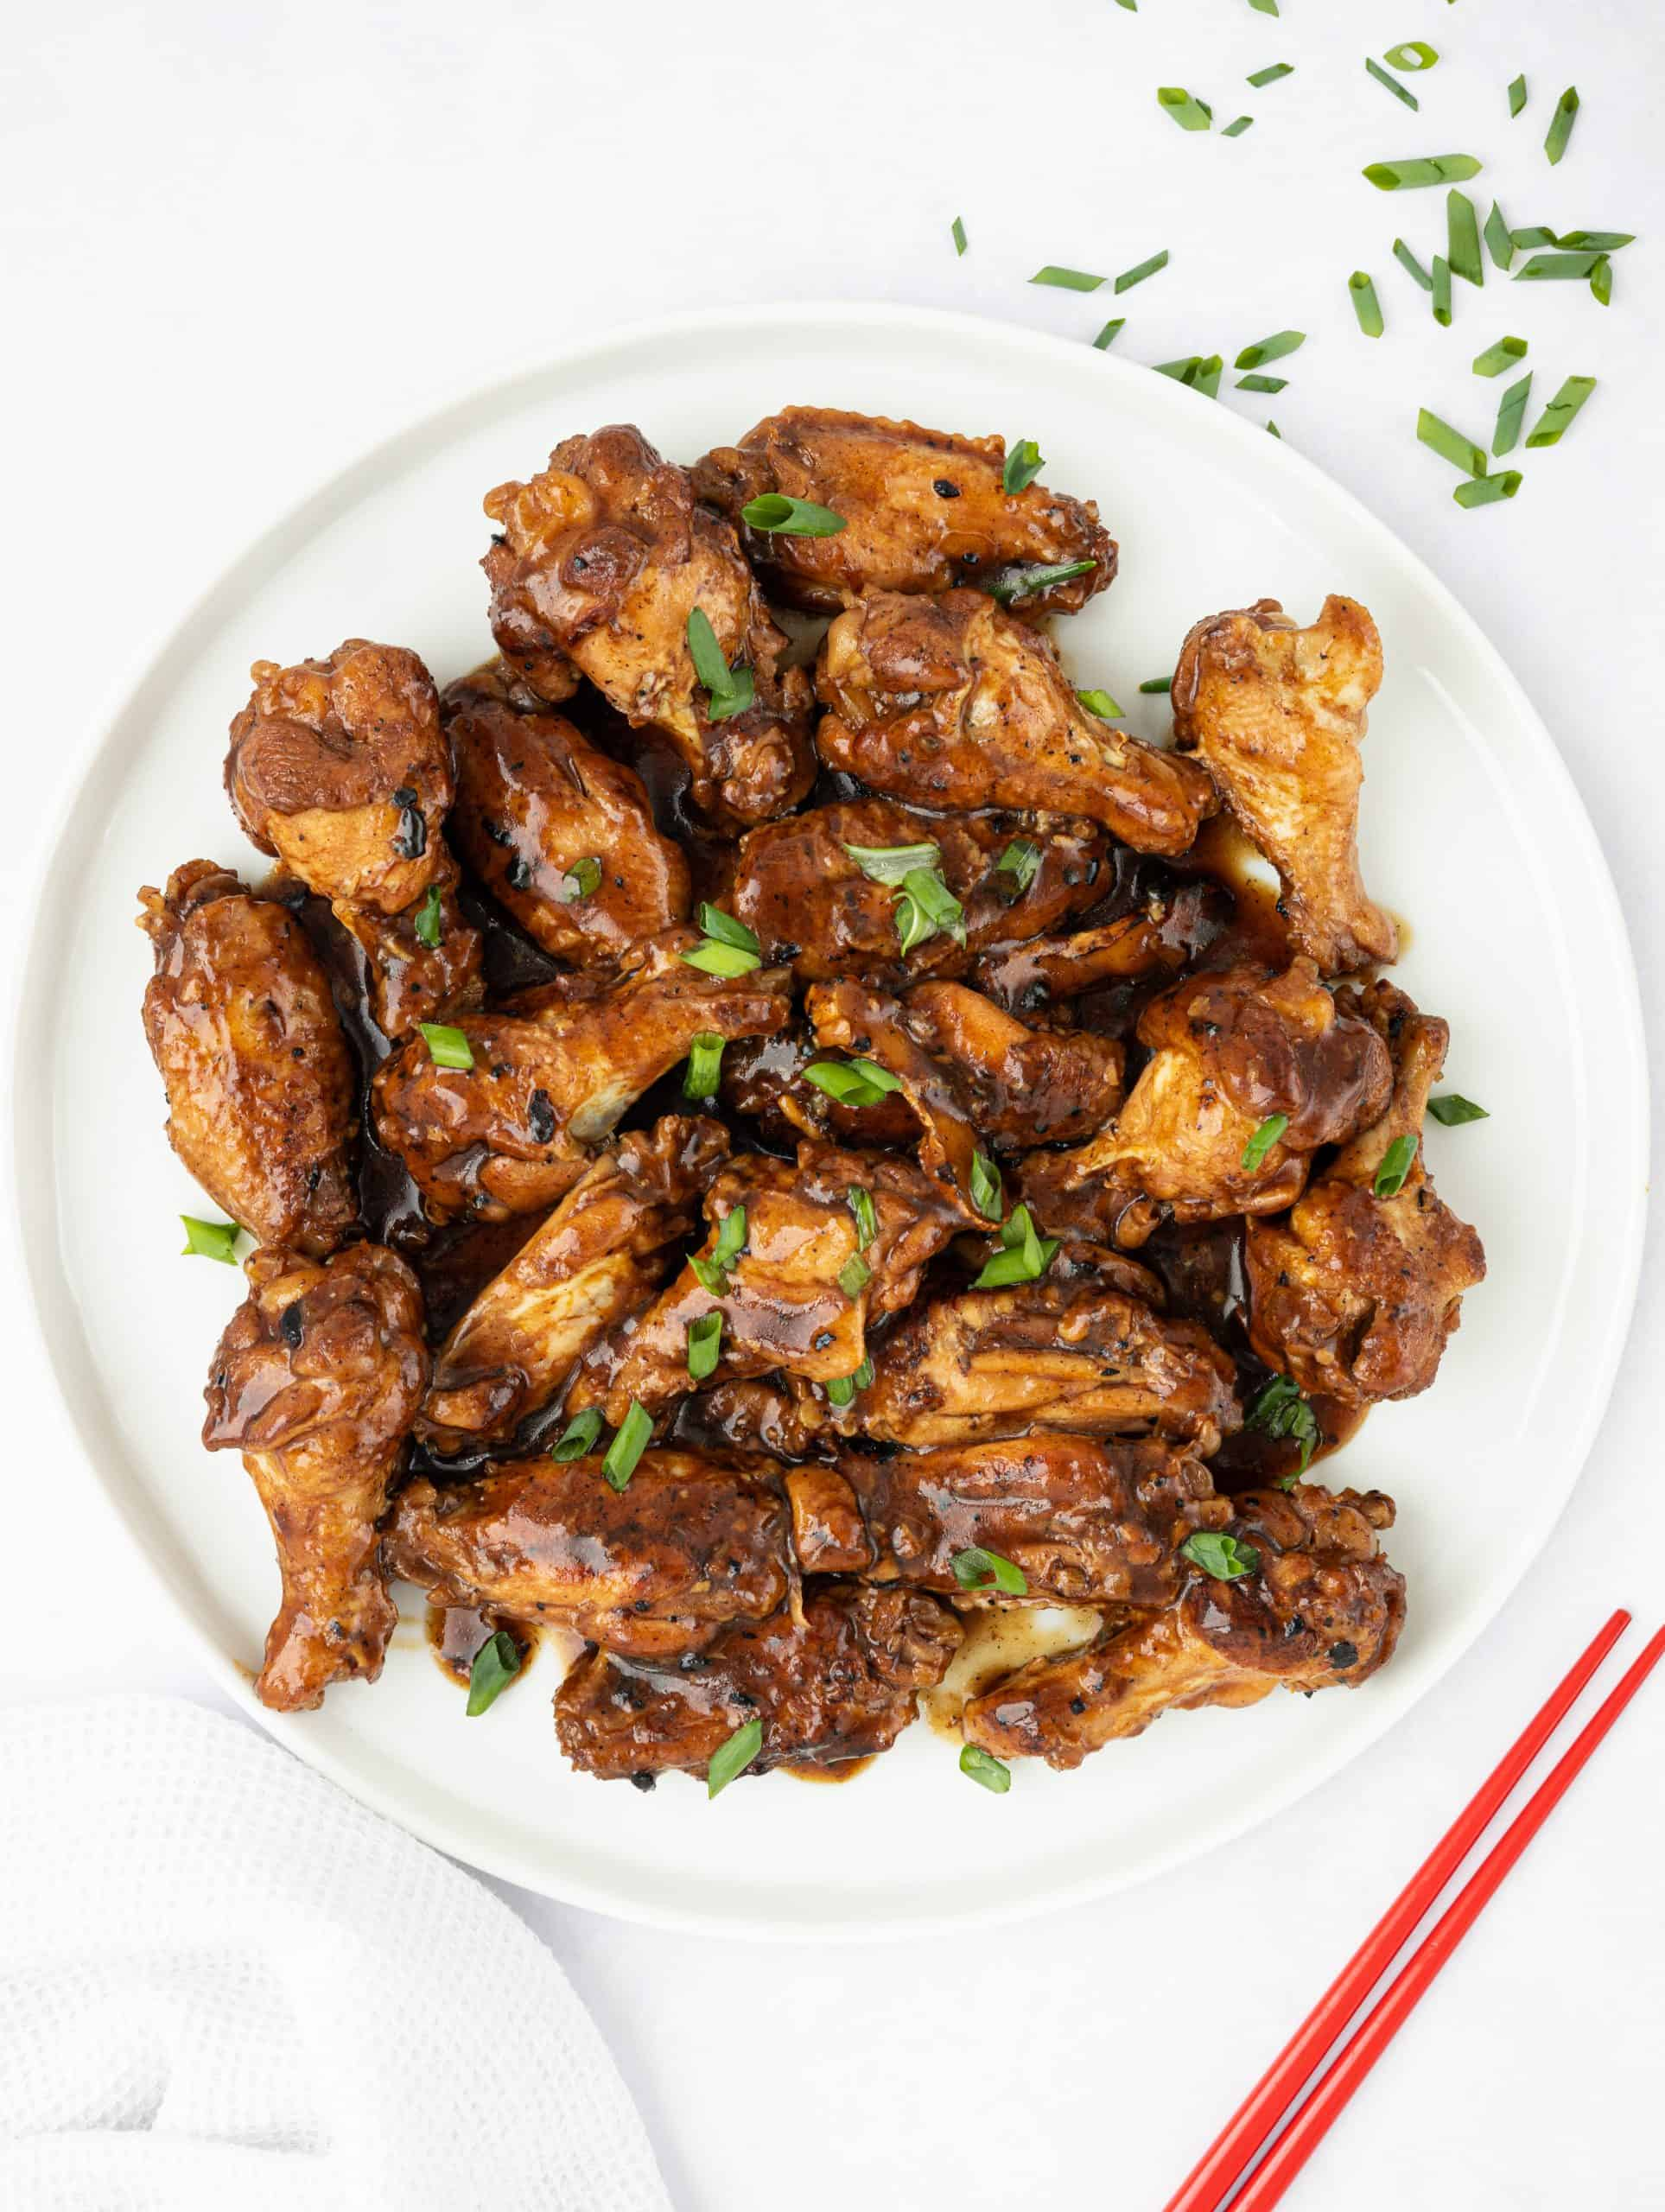 Oyster Sauce Braised Chicken Wings